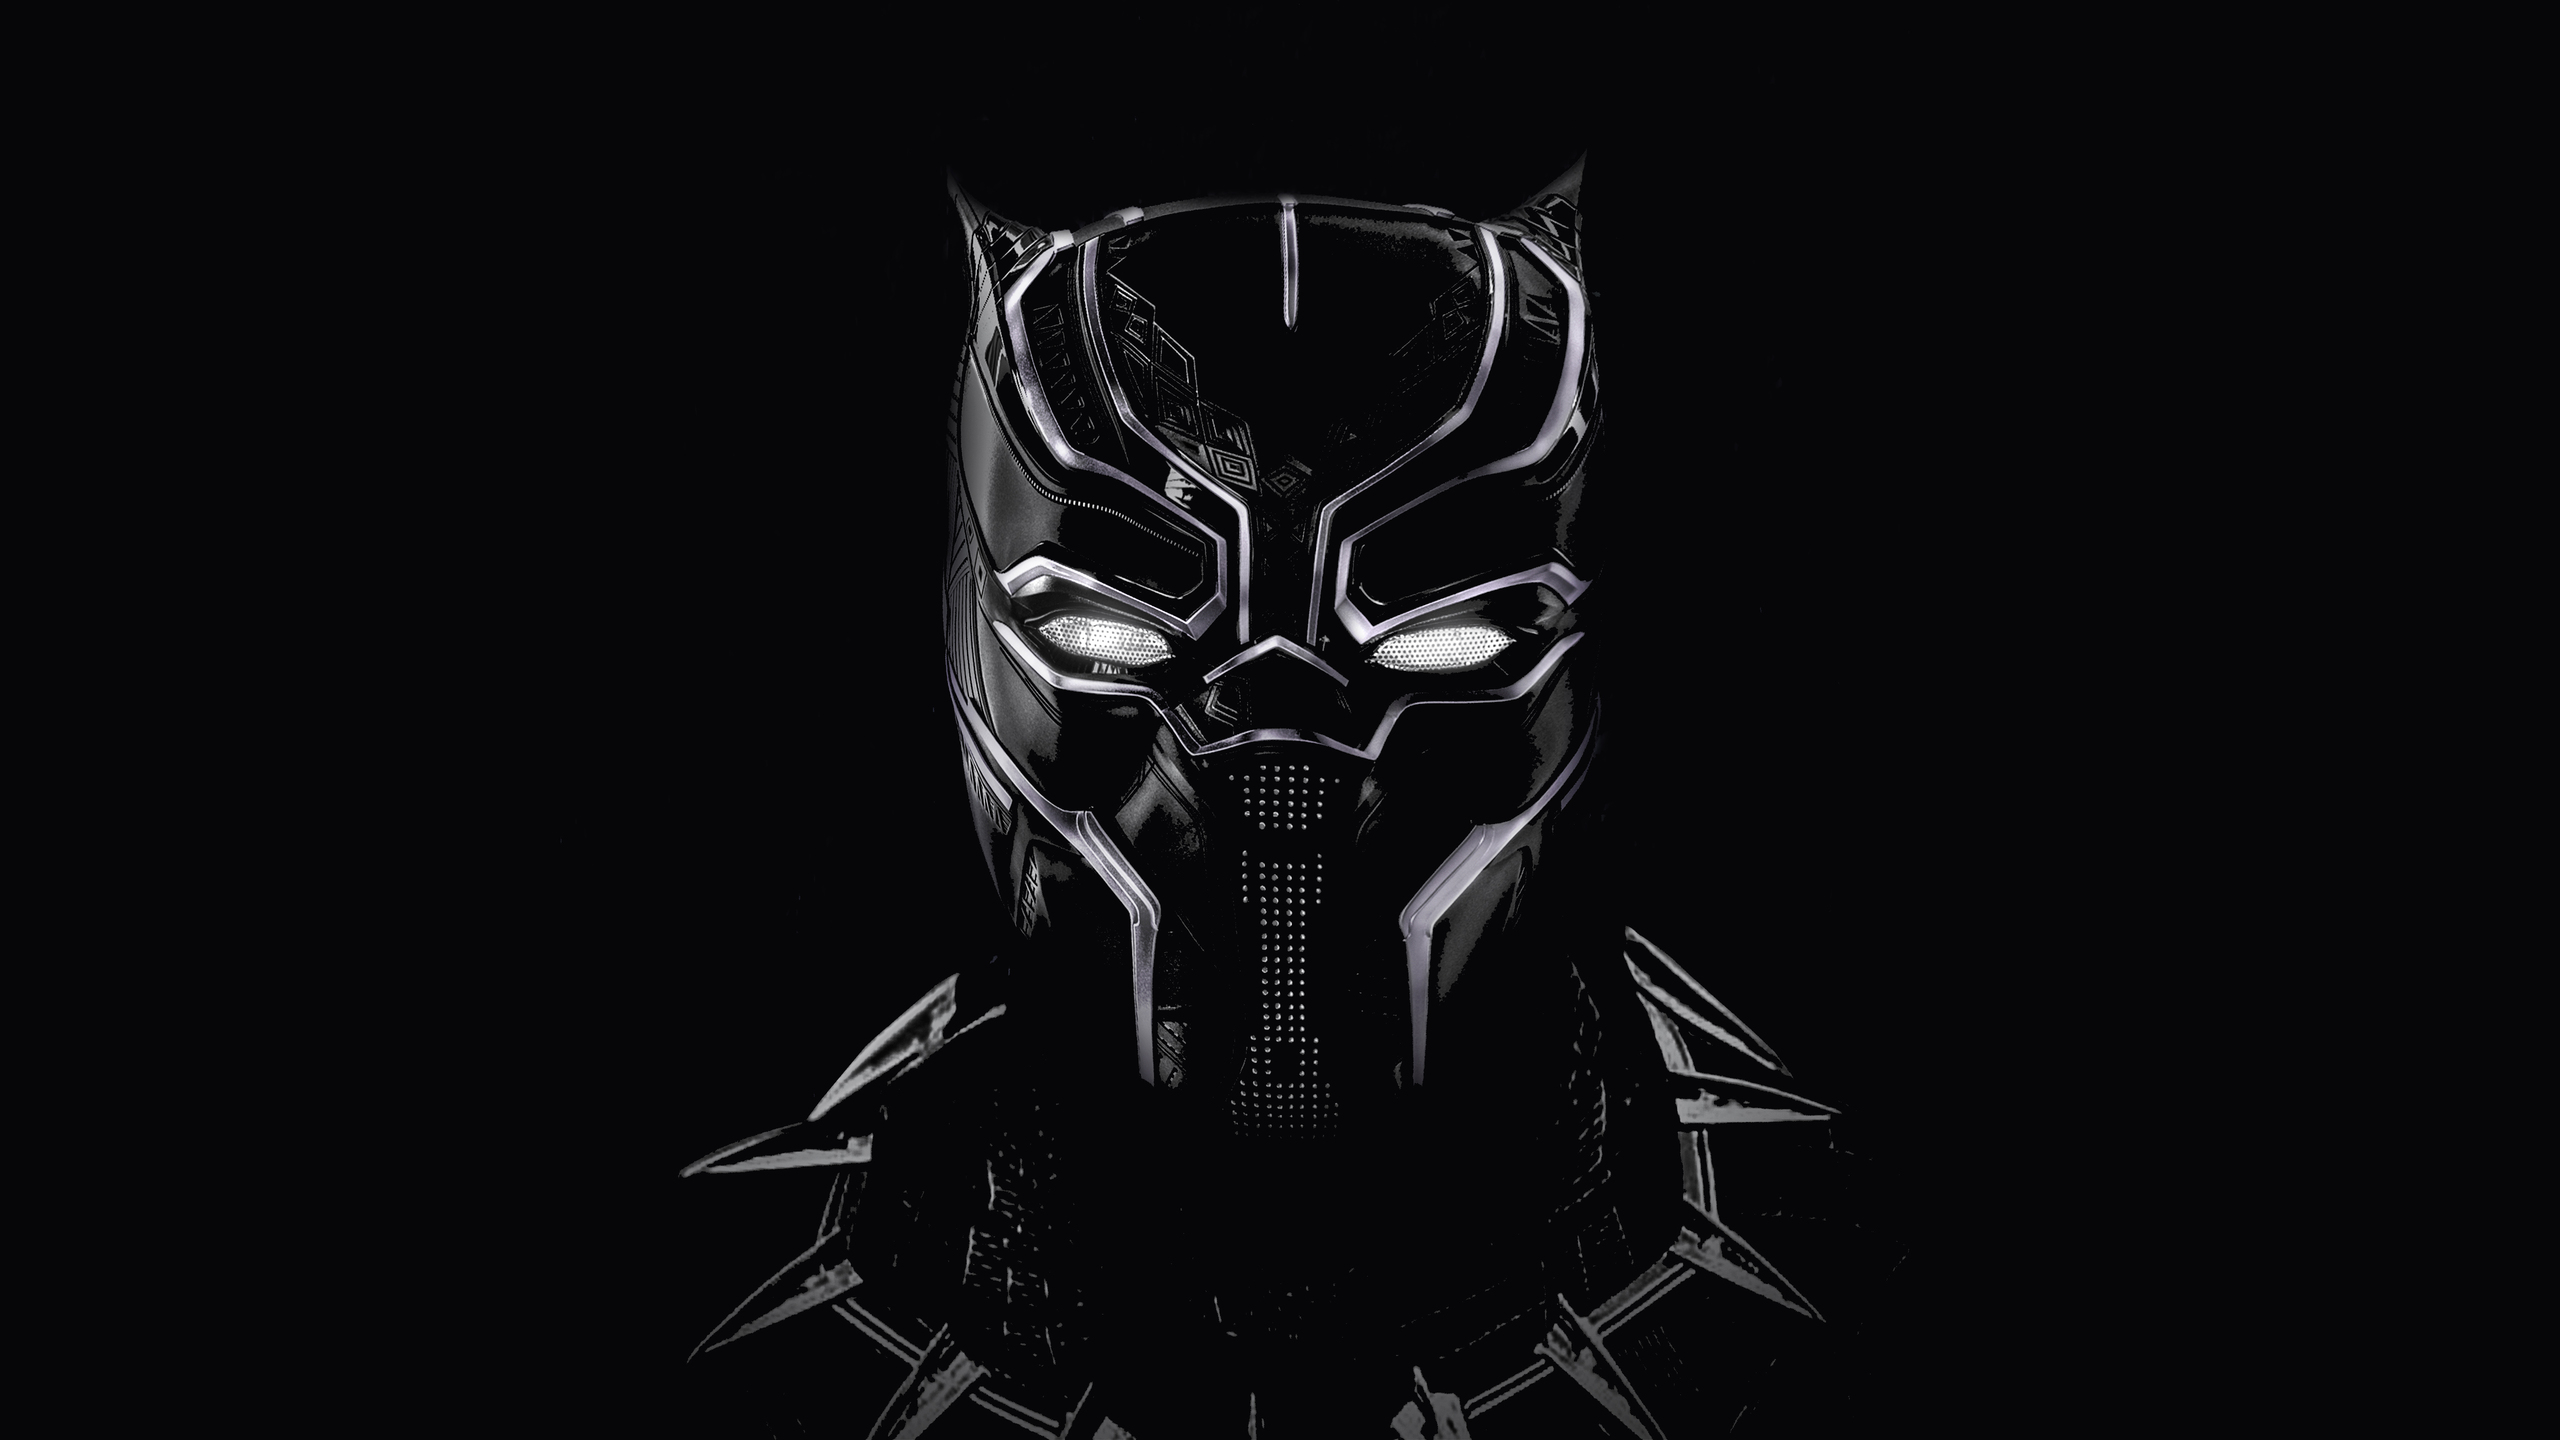 2560x1440 Black Panther Artwork 5k 1440p Resolution Hd 4k Wallpapers